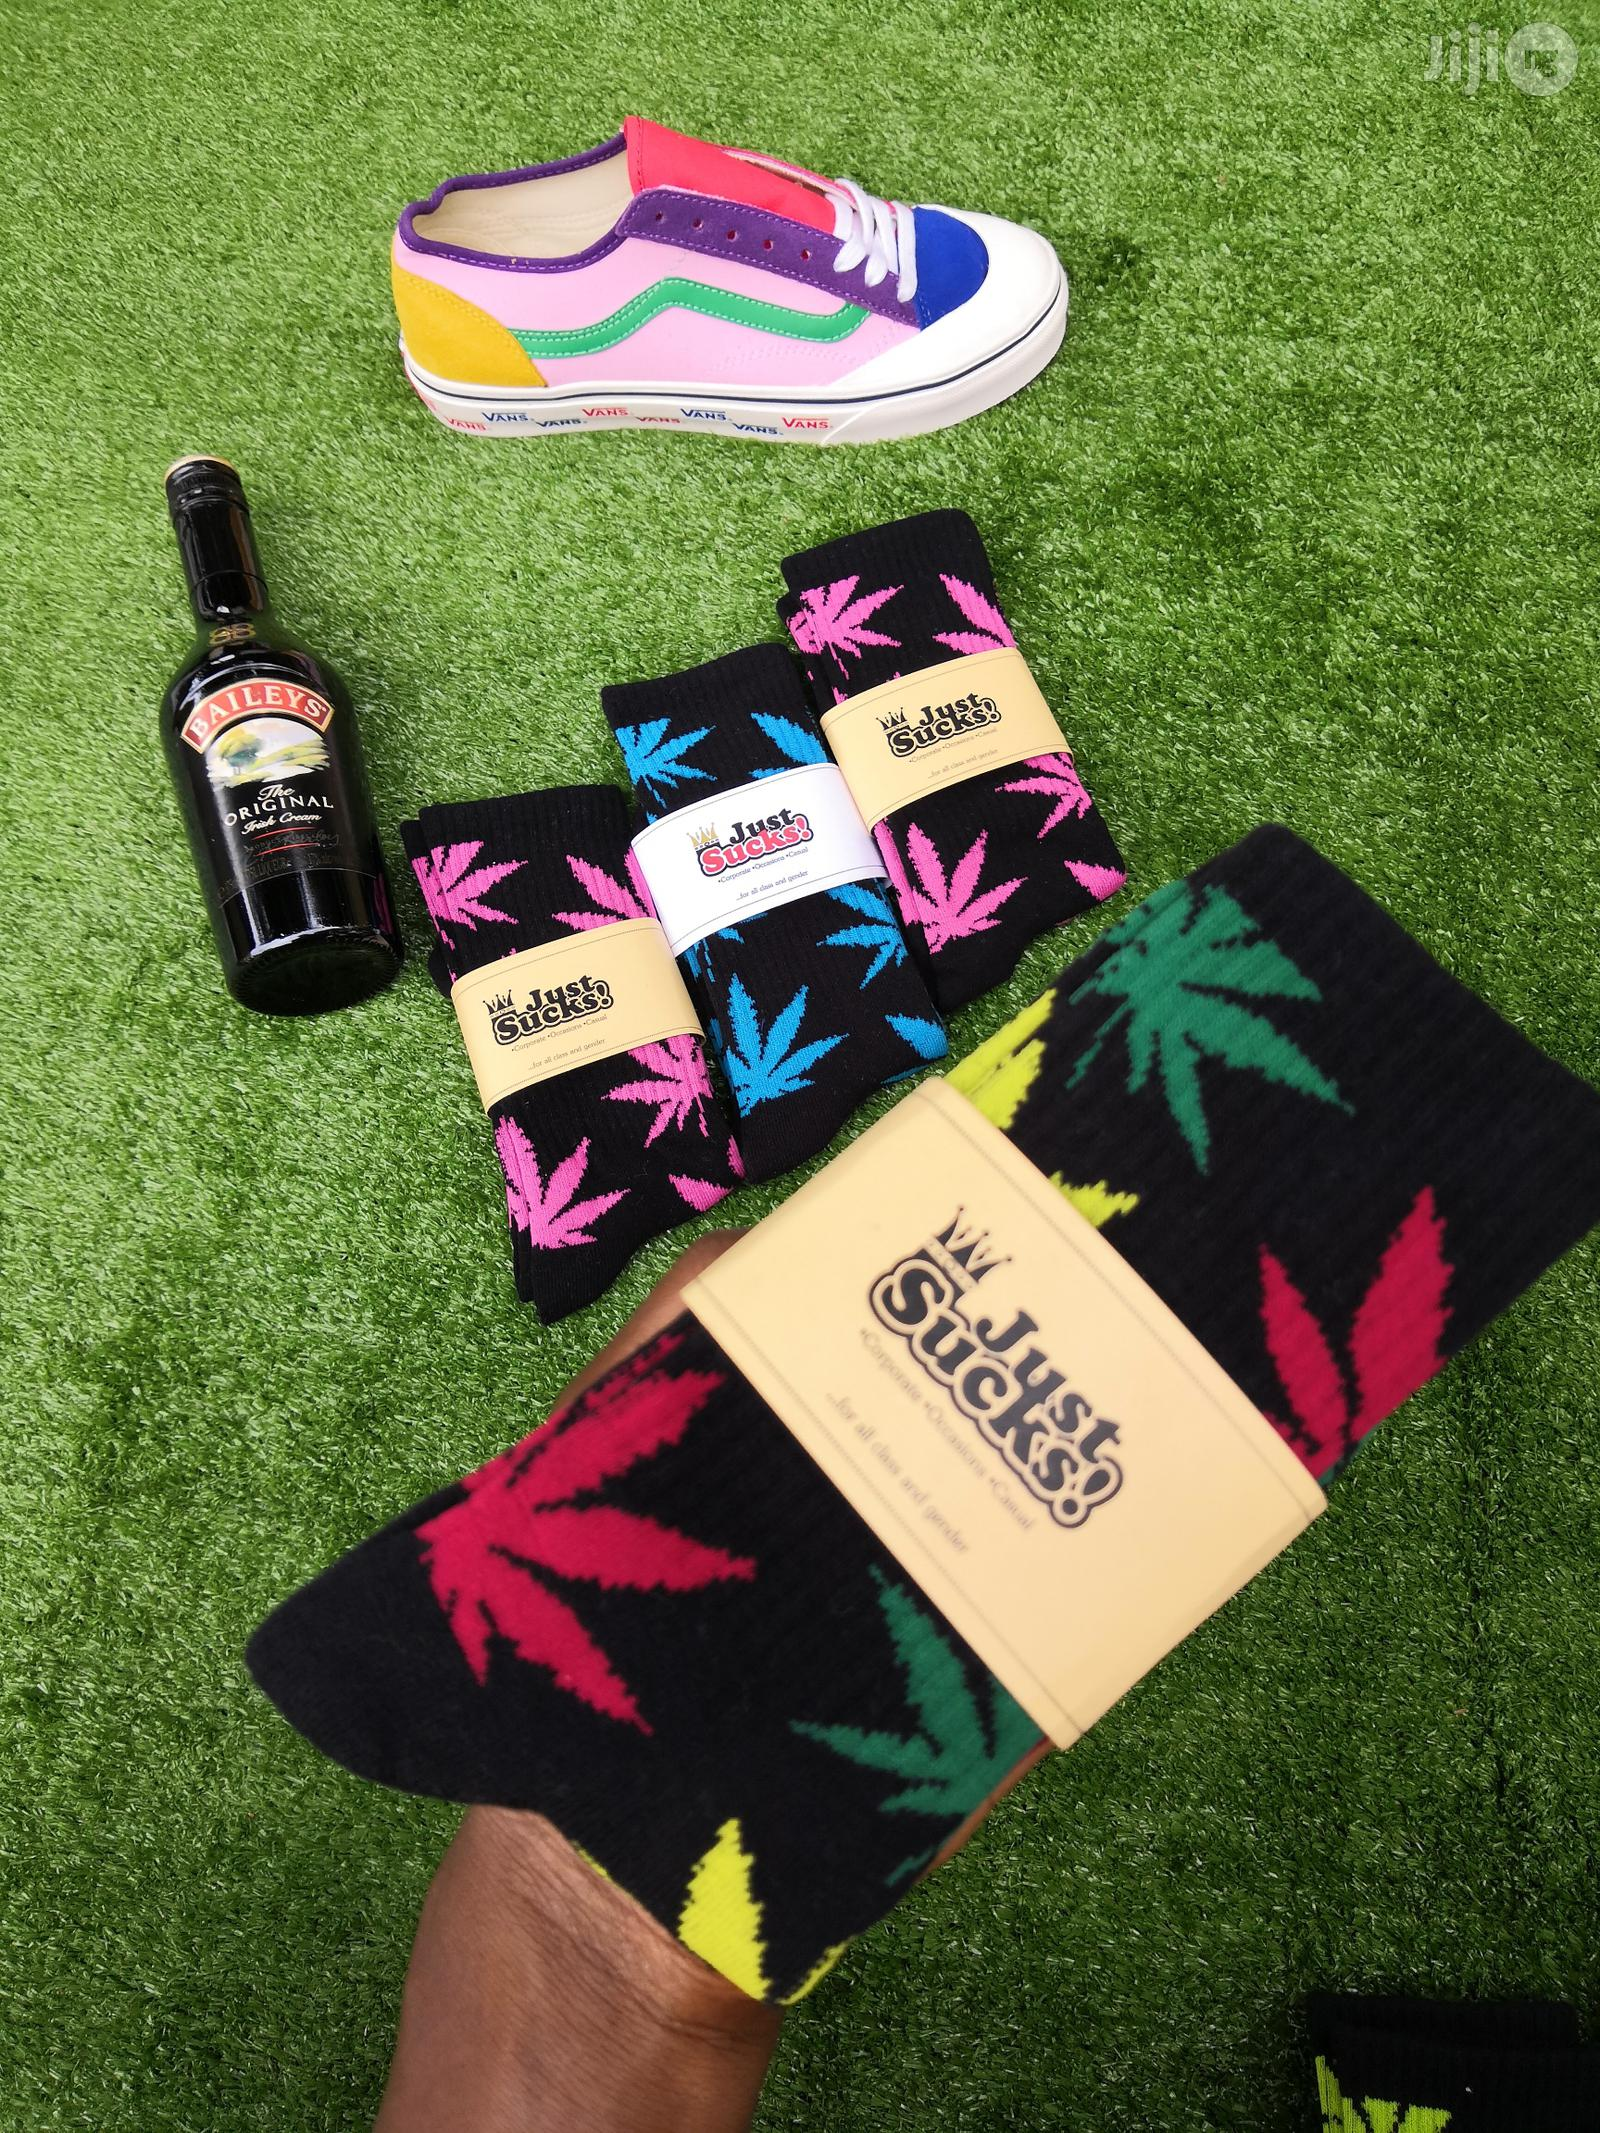 Huf Weed 420 Stoners Socks | Clothing Accessories for sale in Ikeja, Lagos State, Nigeria